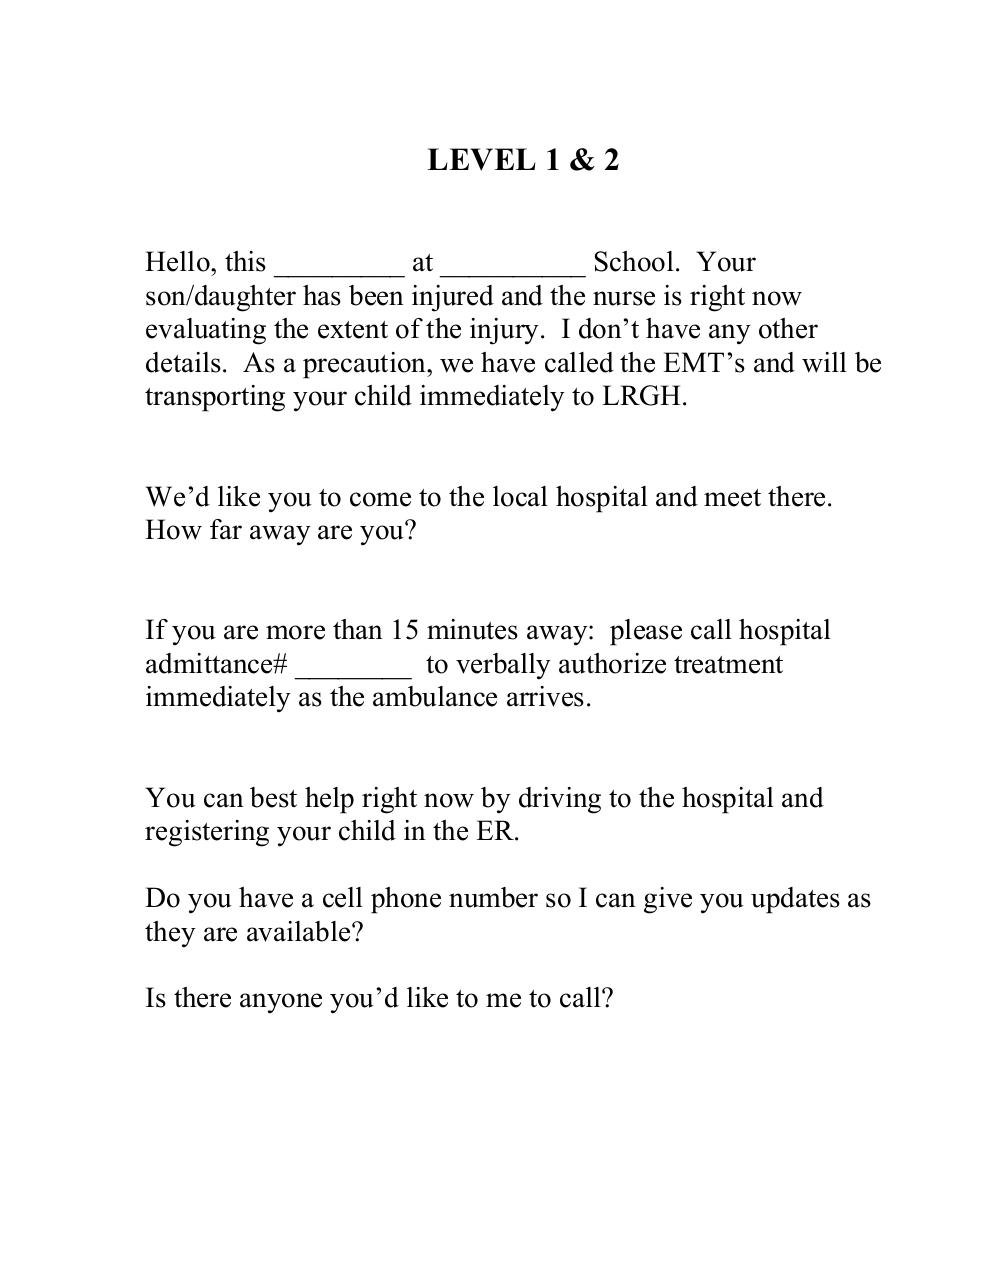 Medical levels explained and sample script .pdf - page 4/6